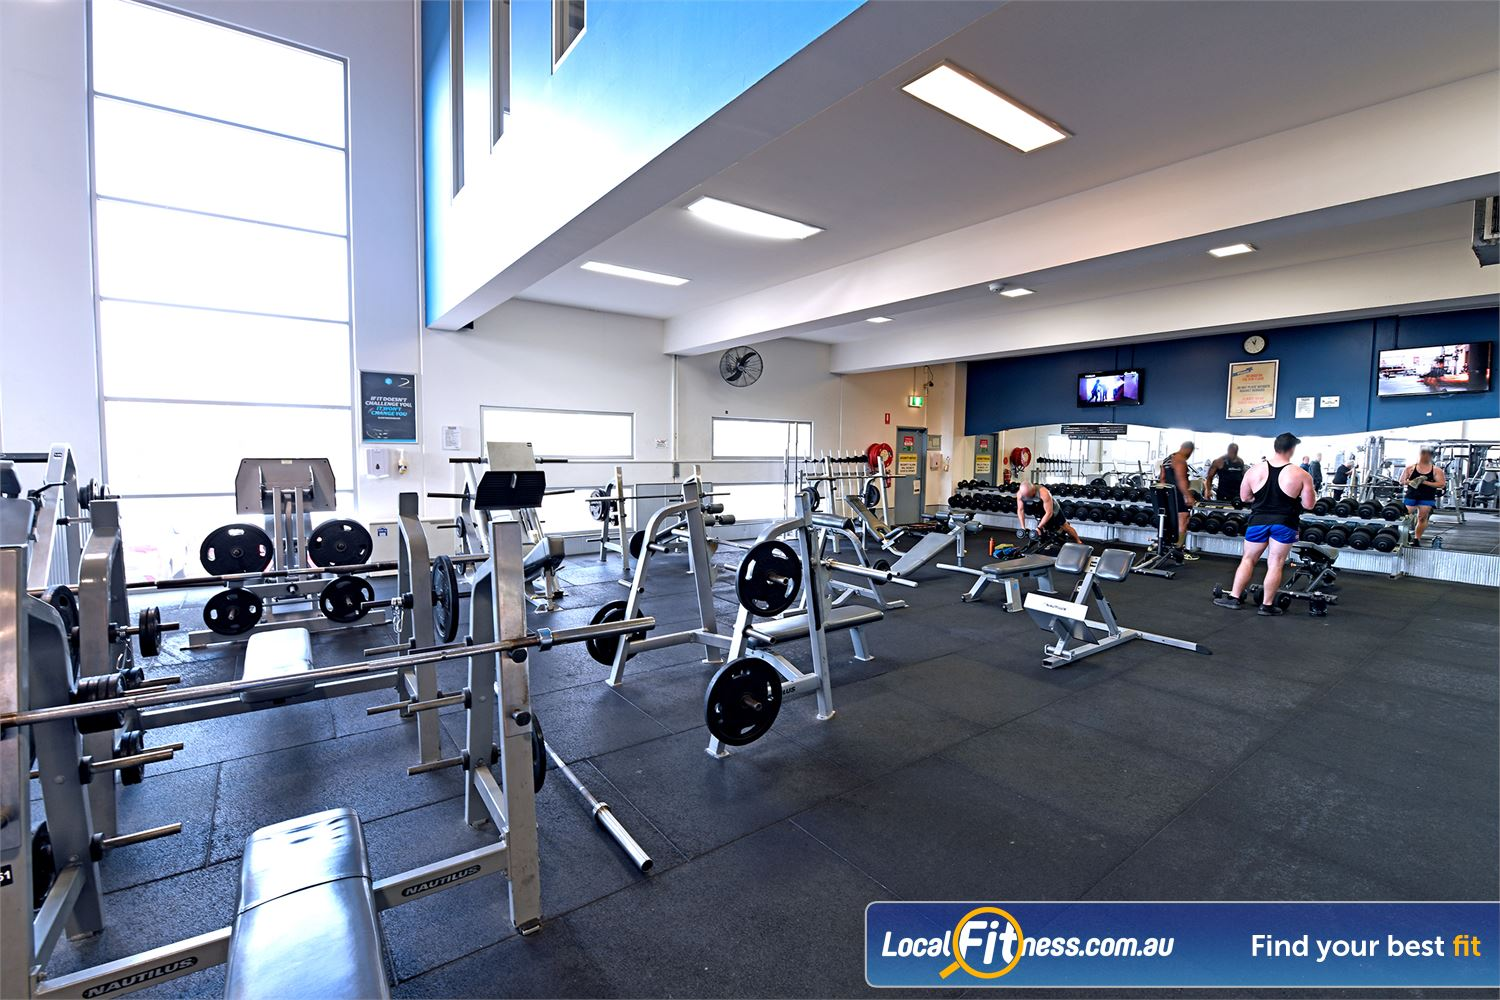 Goodlife Health Clubs Geelong Our Geelong gym includes multiple lifting racks, benches and more.